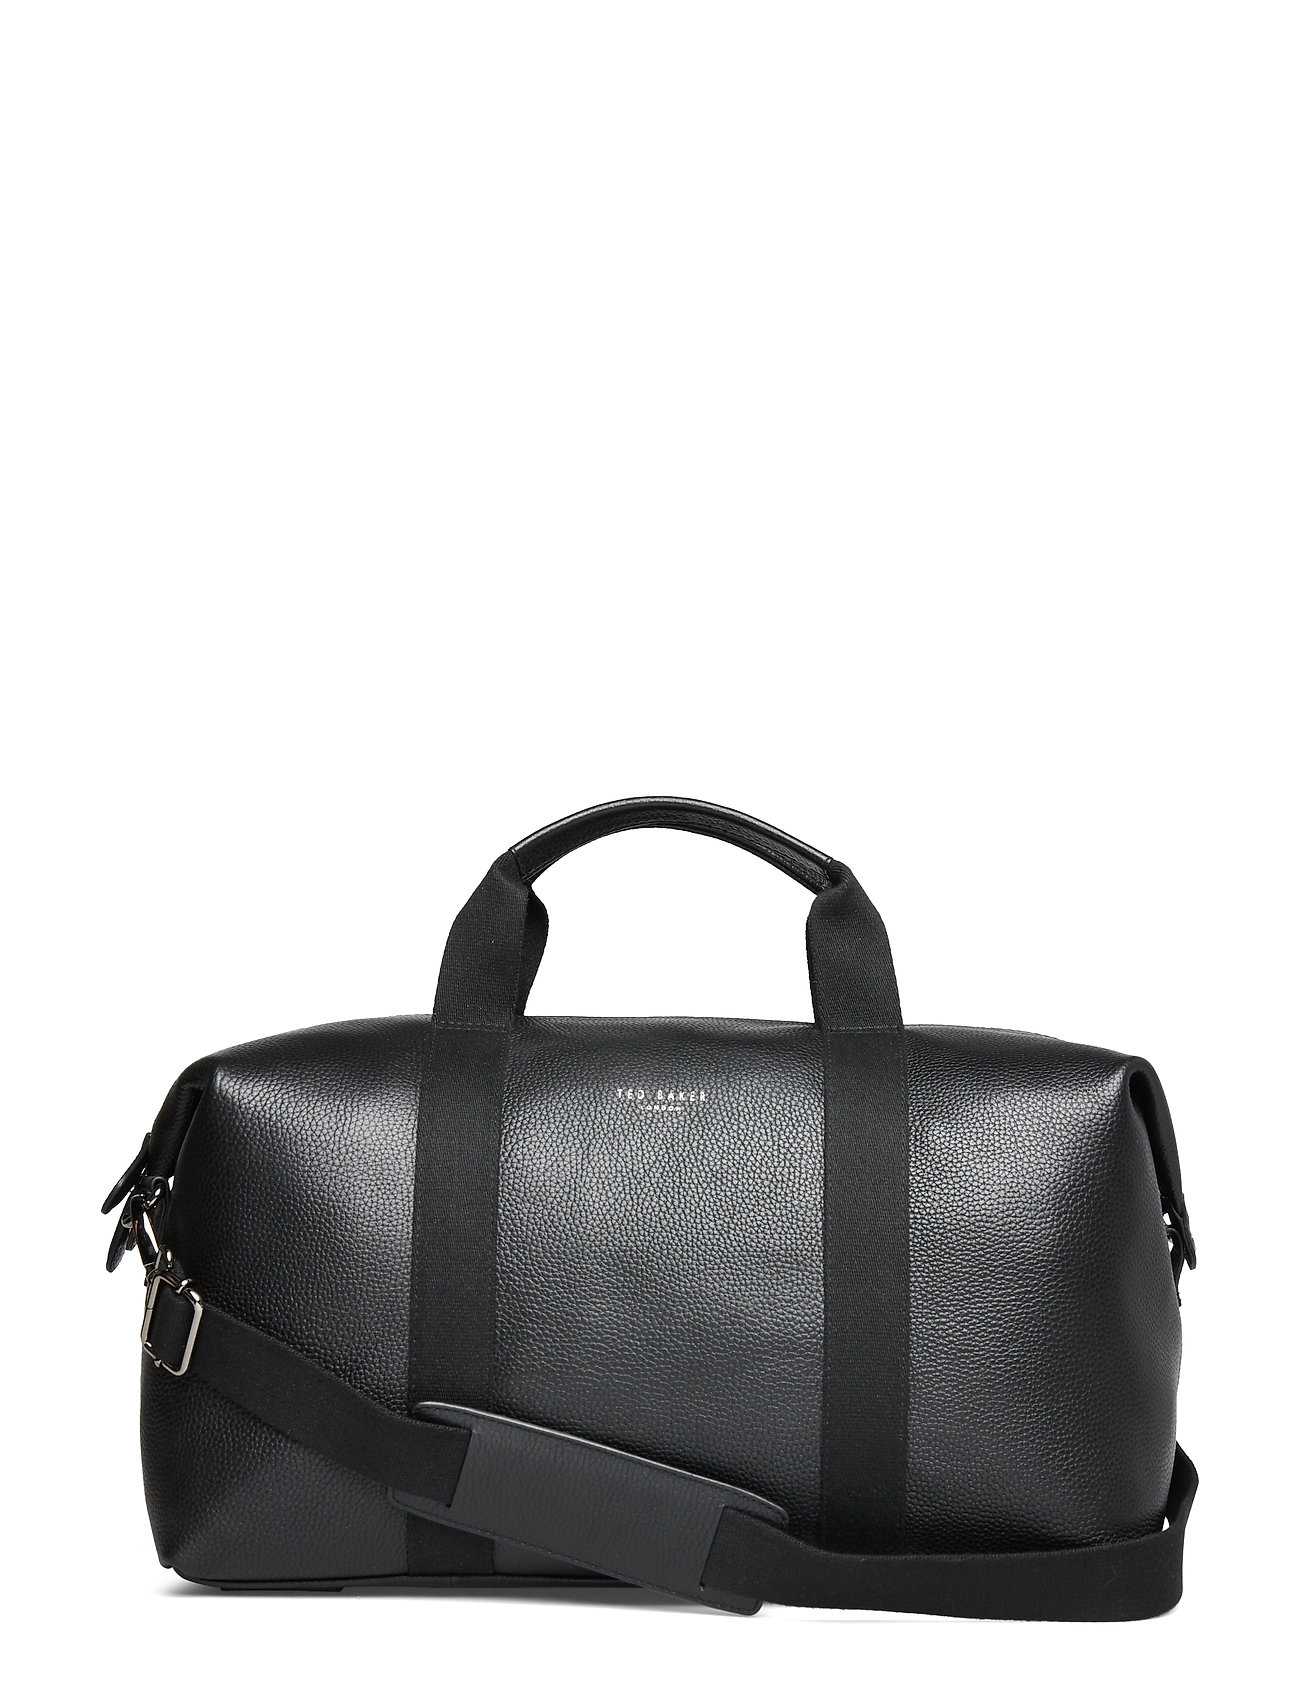 TED BAKER Holding Bags Weekend & Gym Bags Schwarz TED BAKER